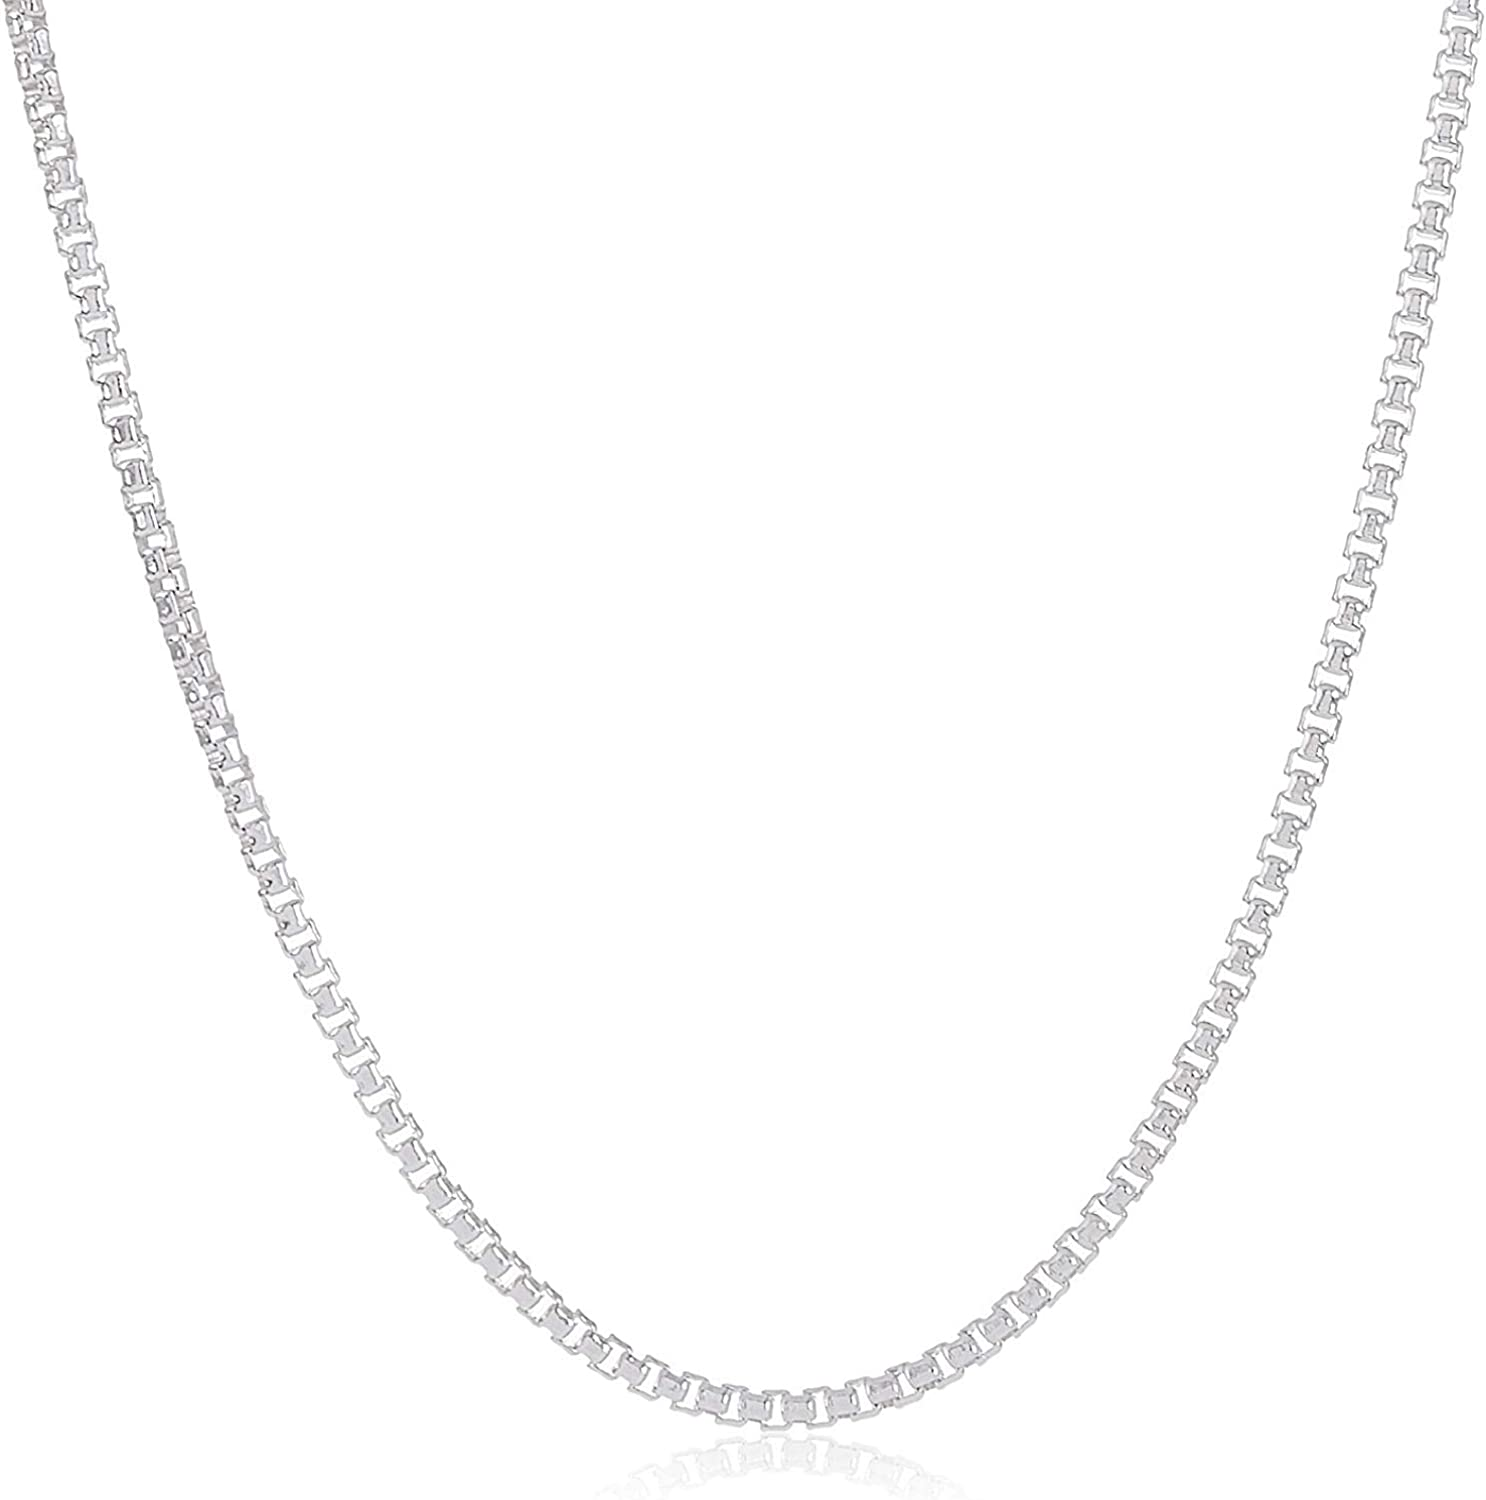 Authentic プレゼント Solid Sterling Silver Box Chain Th 3MM 1MM - Necklace キャンペーンもお見逃しなく